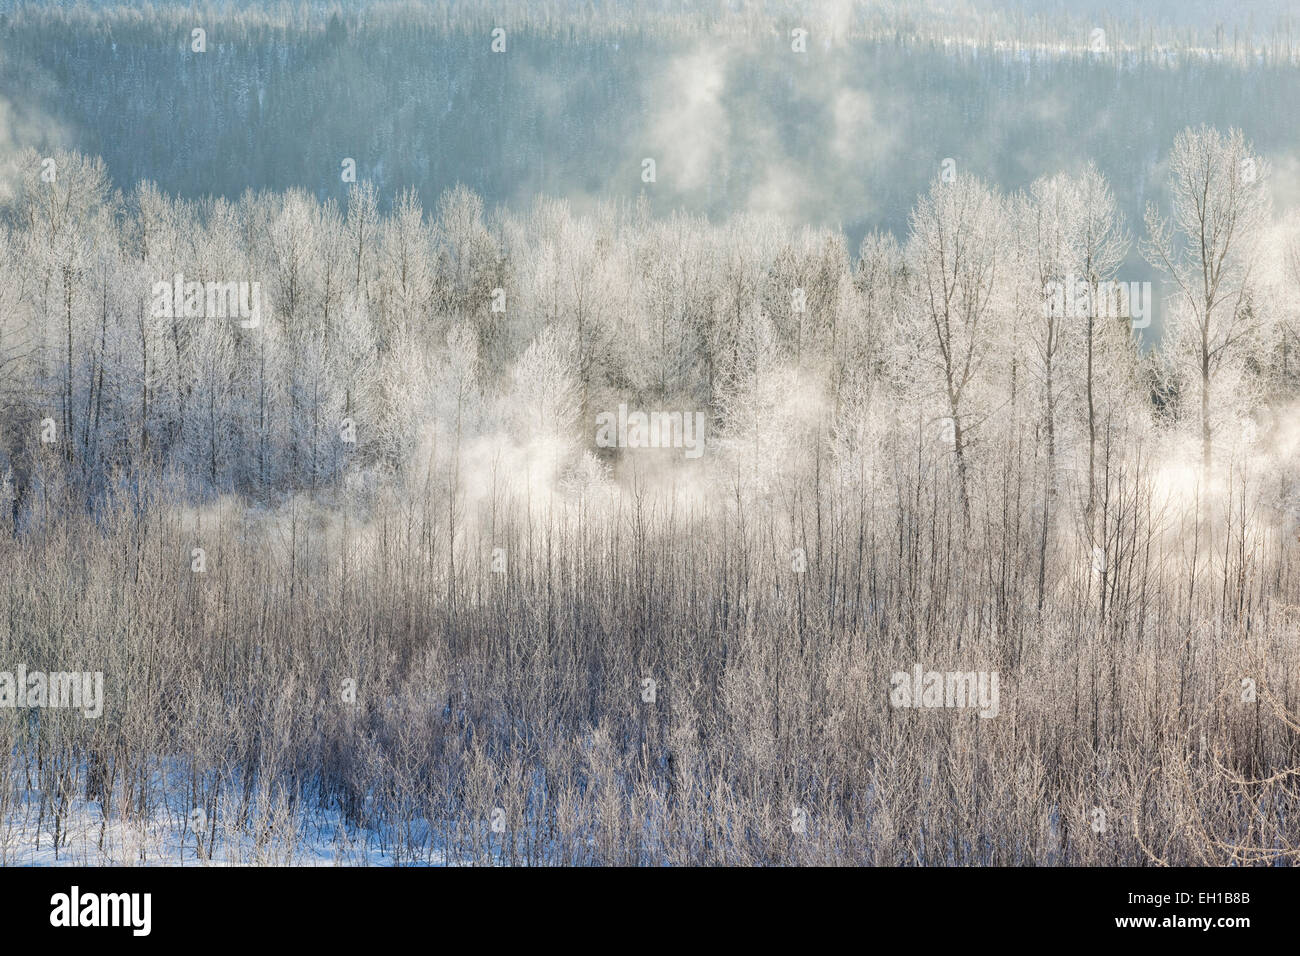 Cold winter fog in valley, Fernie, British Columbia, Canada. - Stock Image